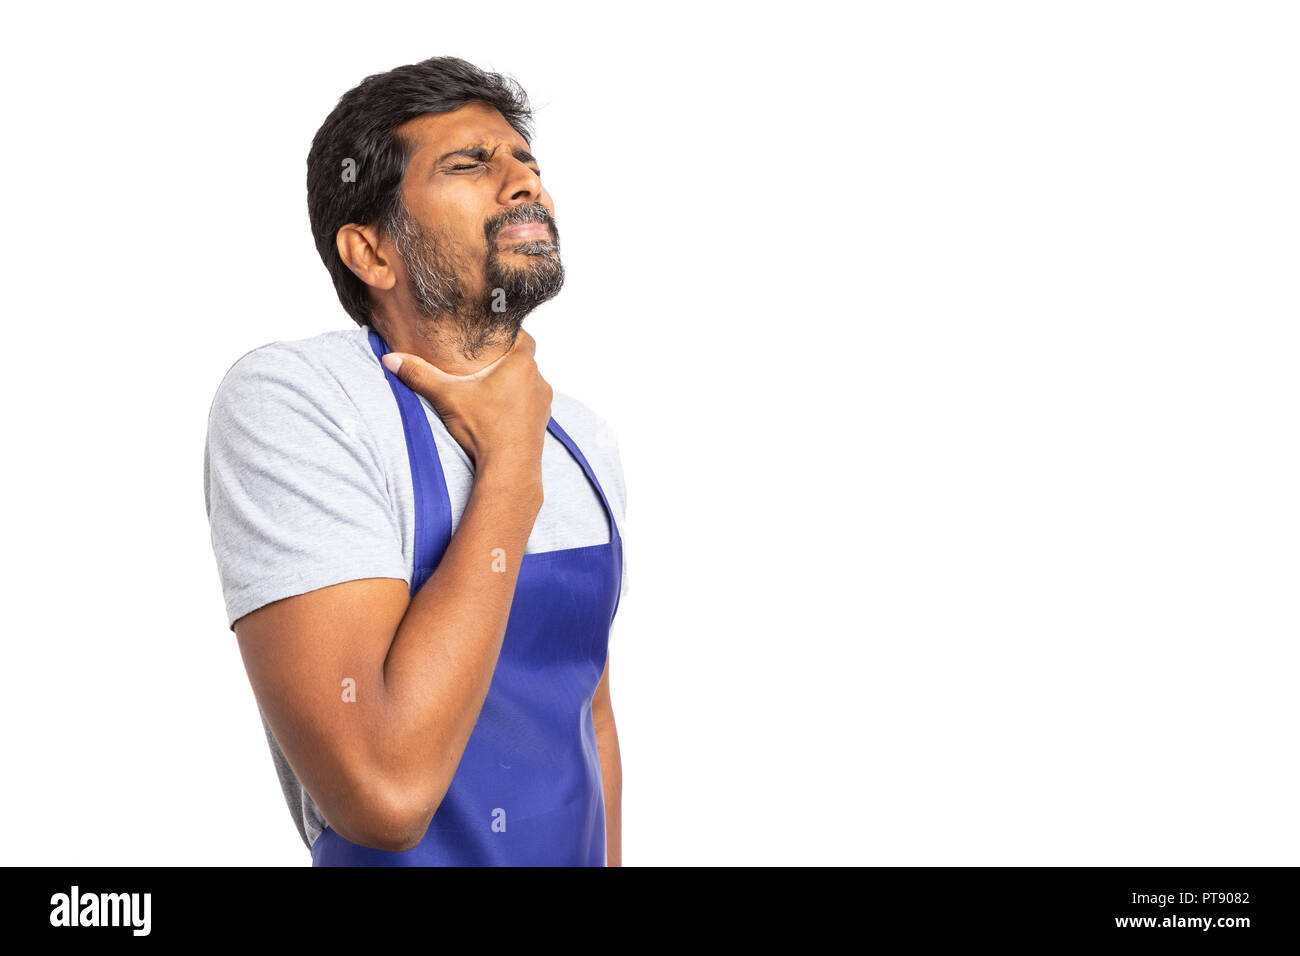 Indian supermarket or hypermarket employee having a sore throat touching neck with one hand isolated on white - Stock Image